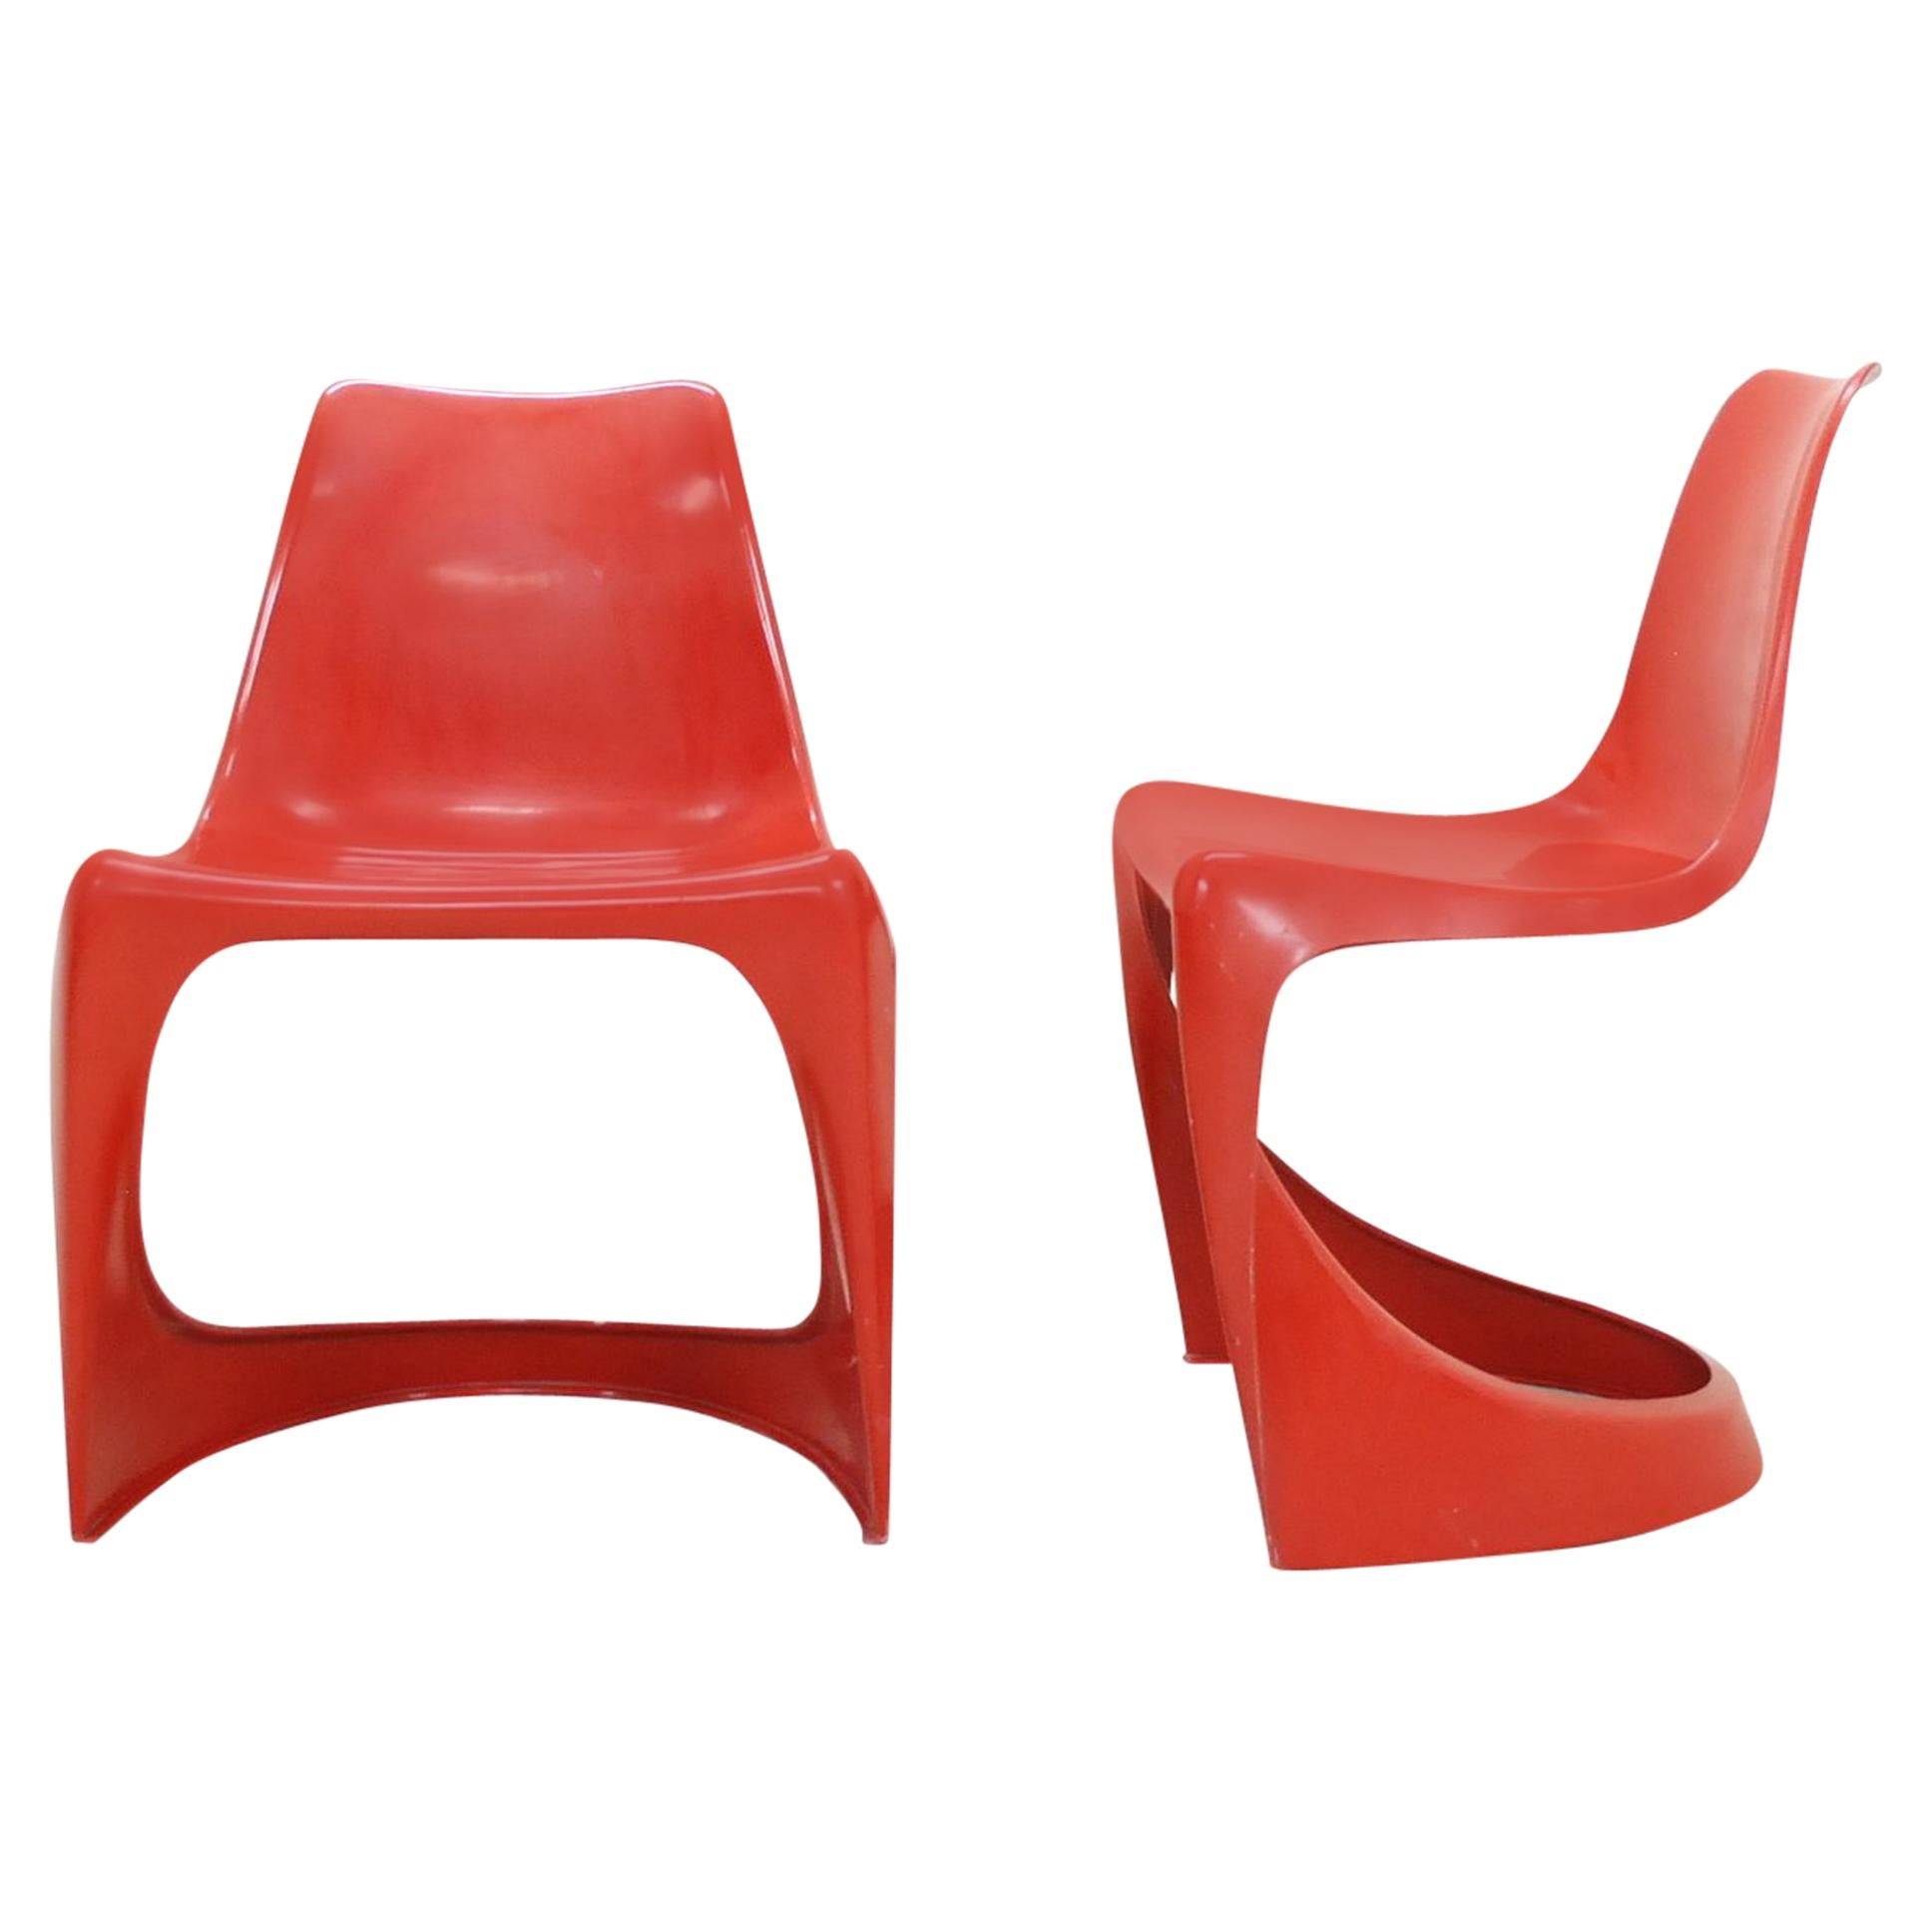 Steen Ostergaard Model 290 Pair of Red Chair for Cado, 1970